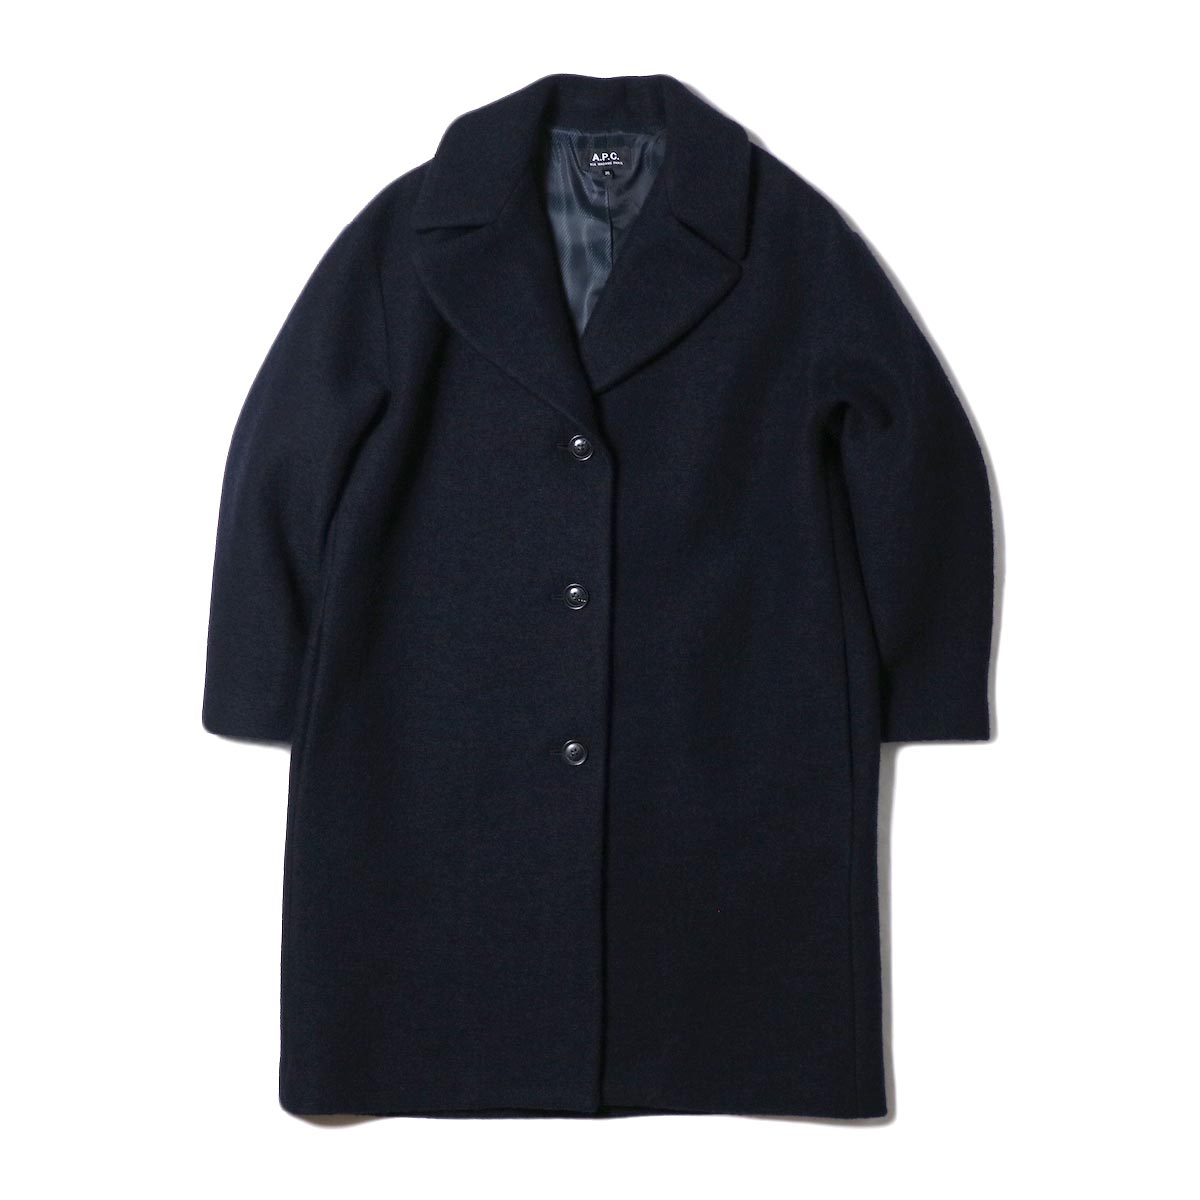 A.P.C. / NINH COAT (navy)